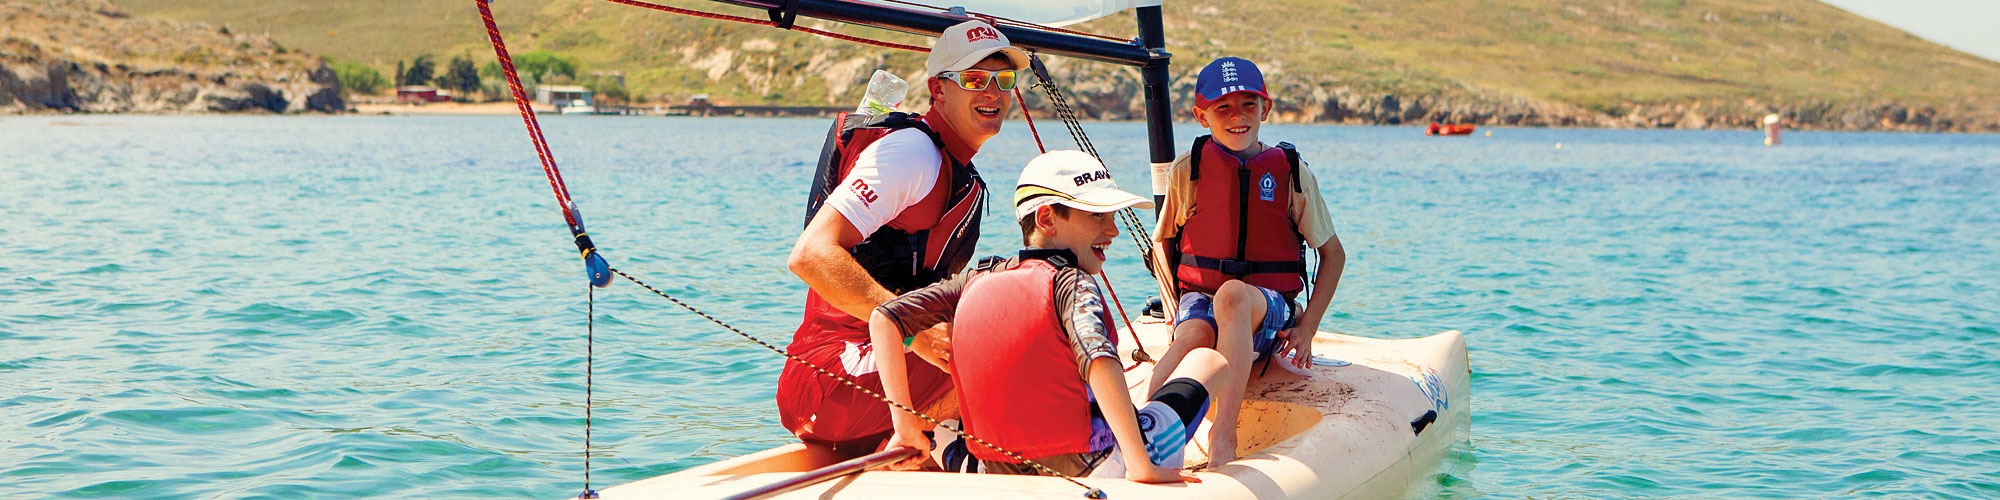 Lemnos watersports